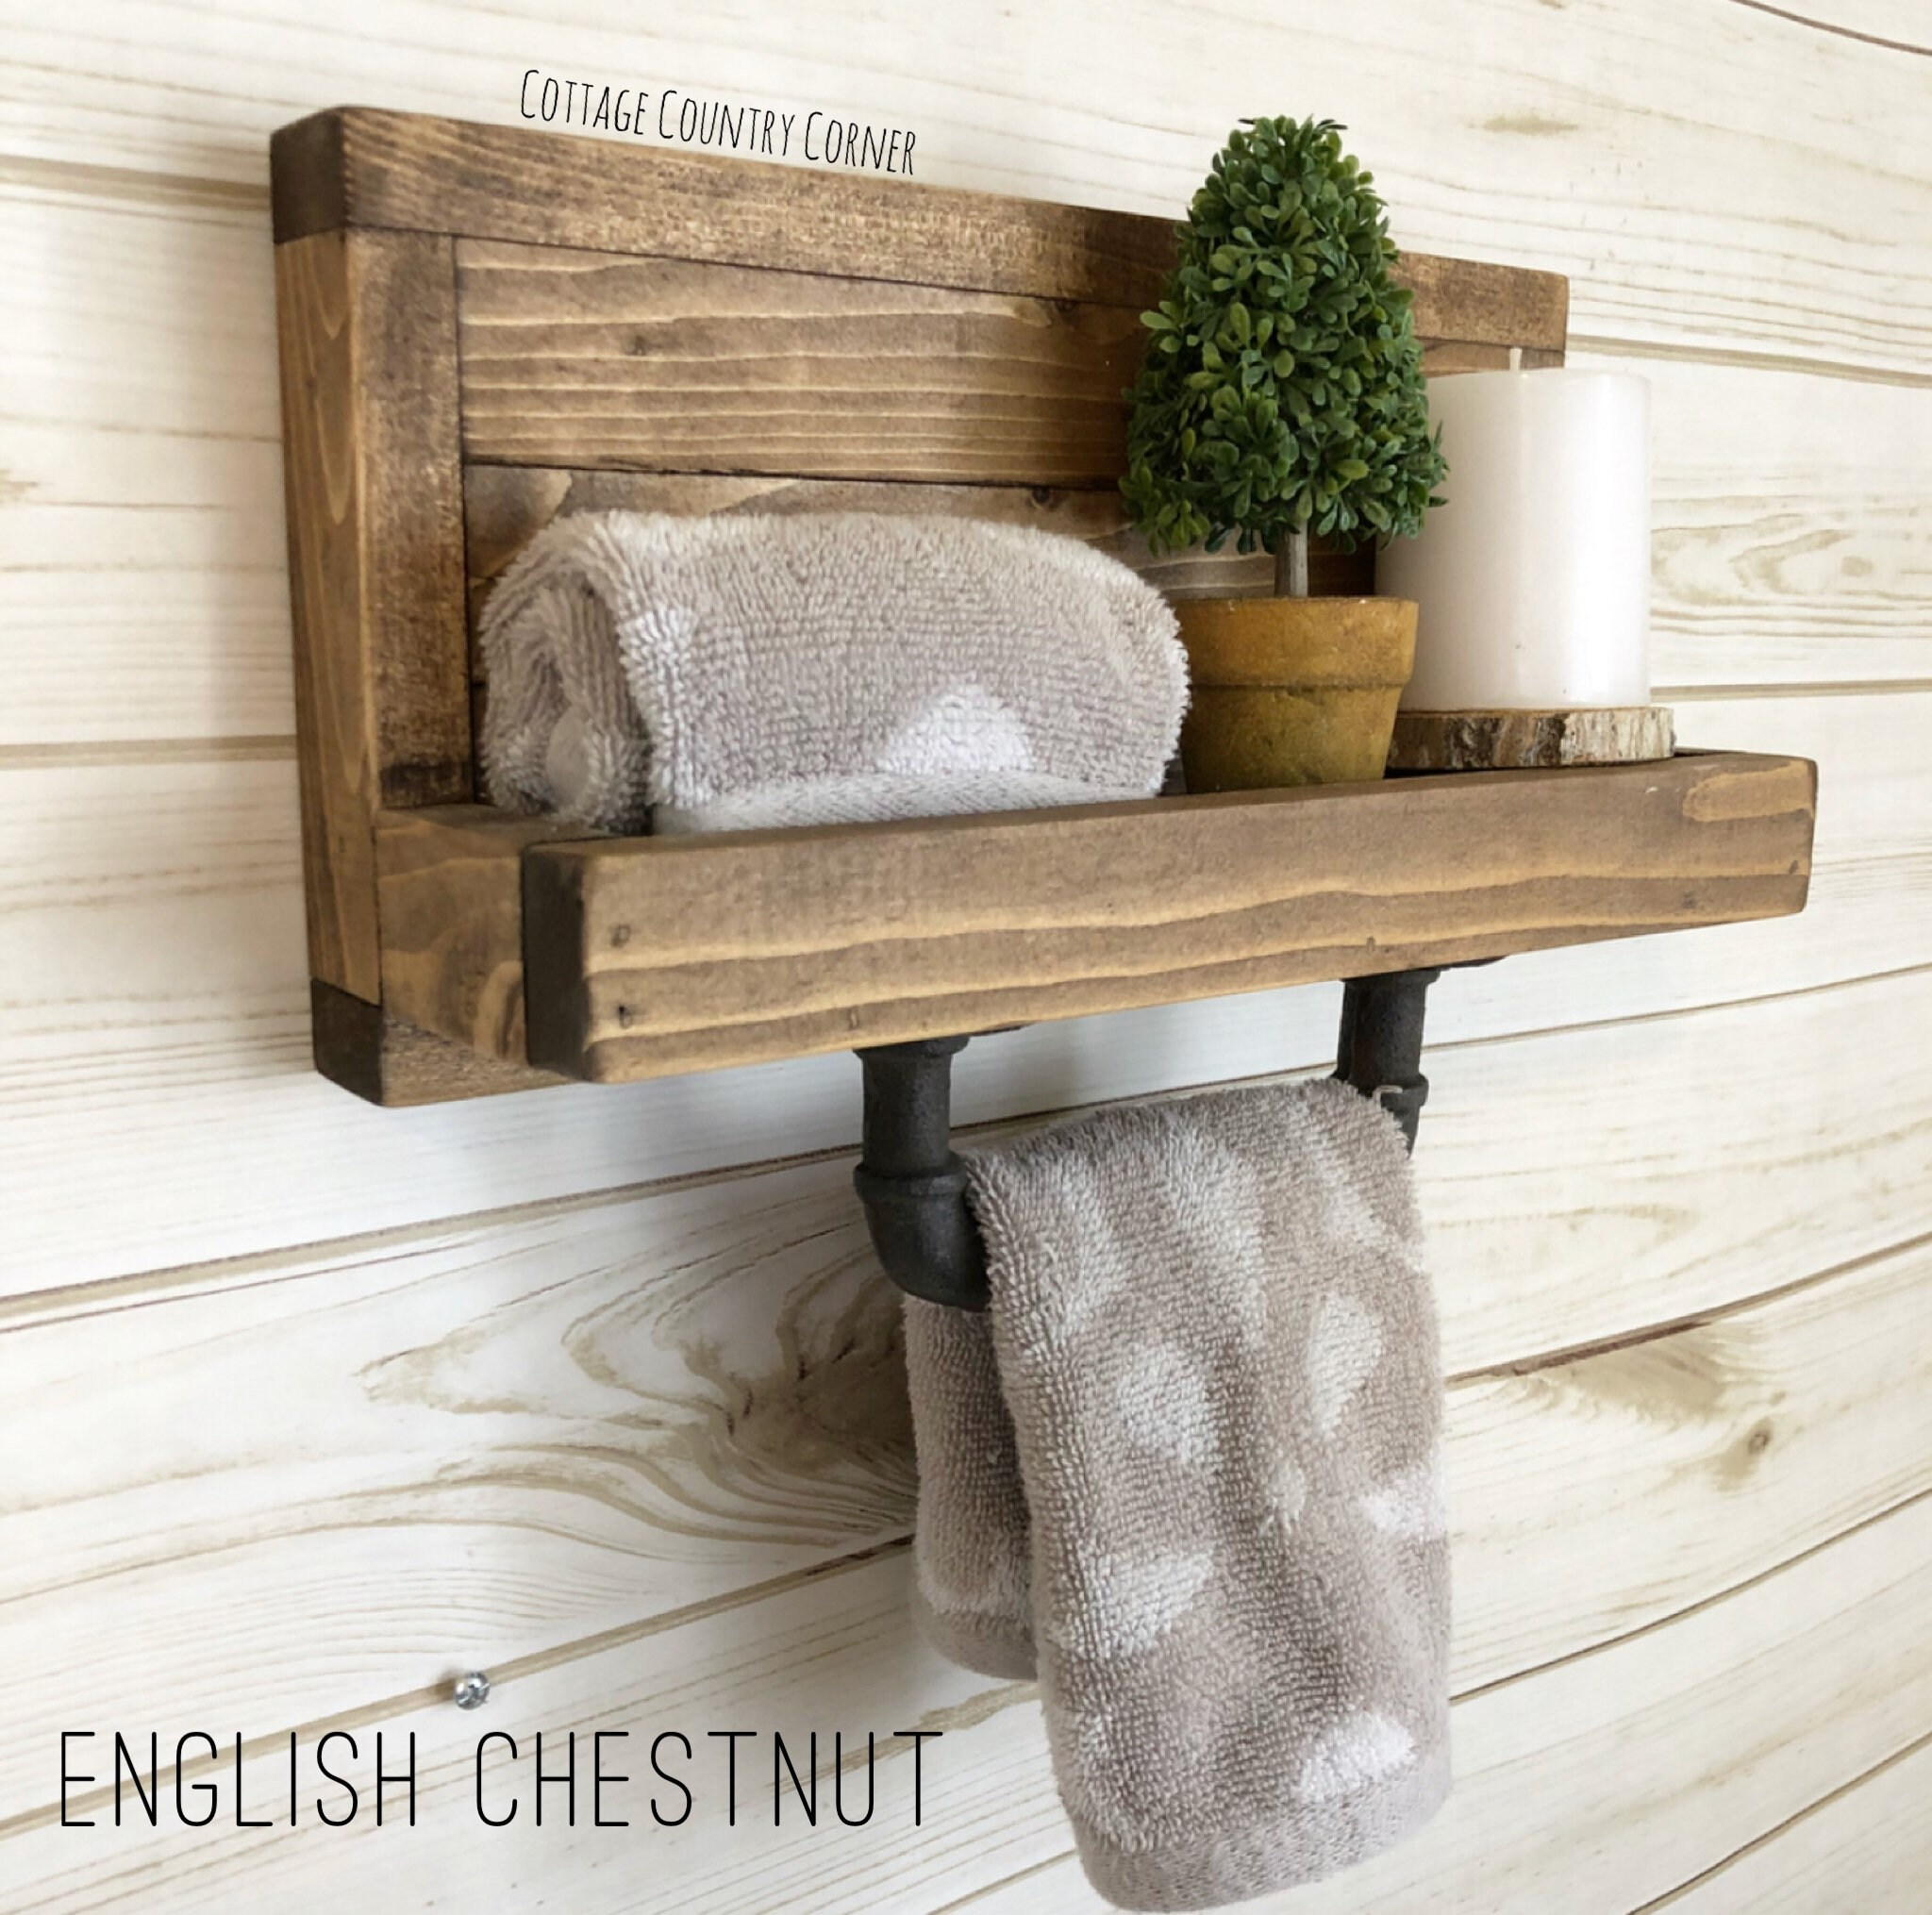 Farmhouse Hand Towel Holder Hand Towel Holder Towel Rack Bathroom Decor Towel Rack